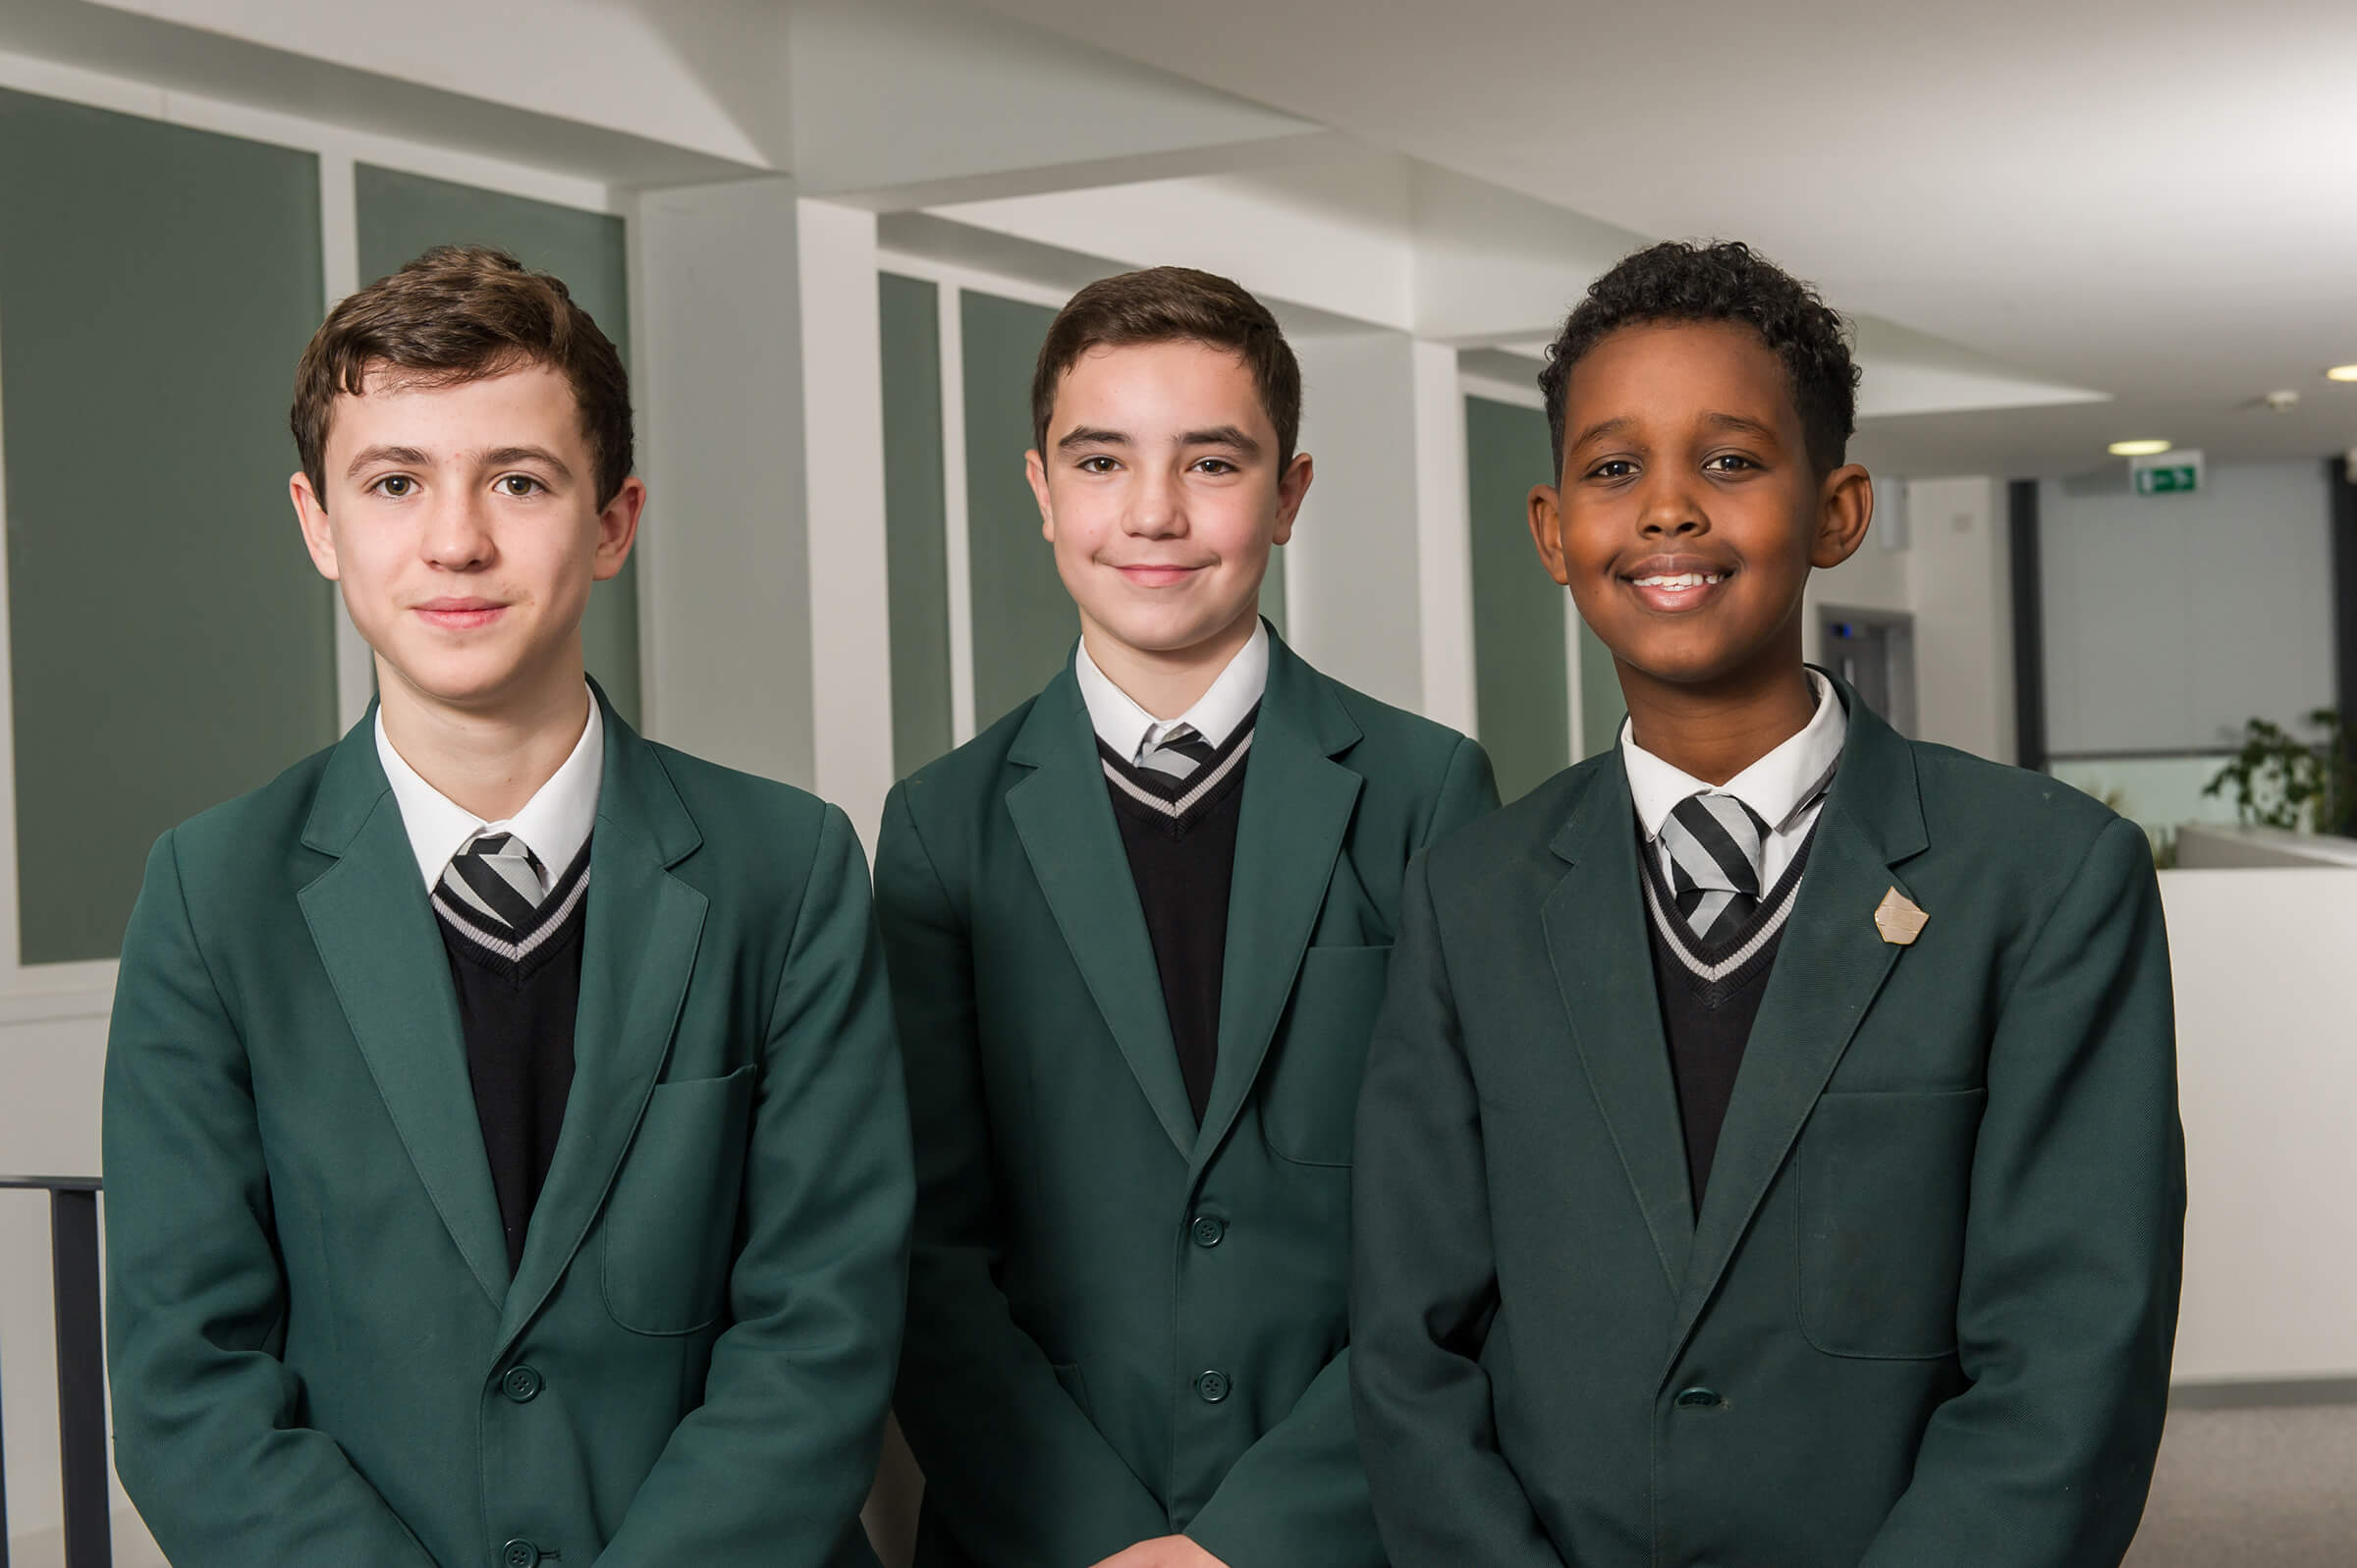 Lord Grey Academy Students